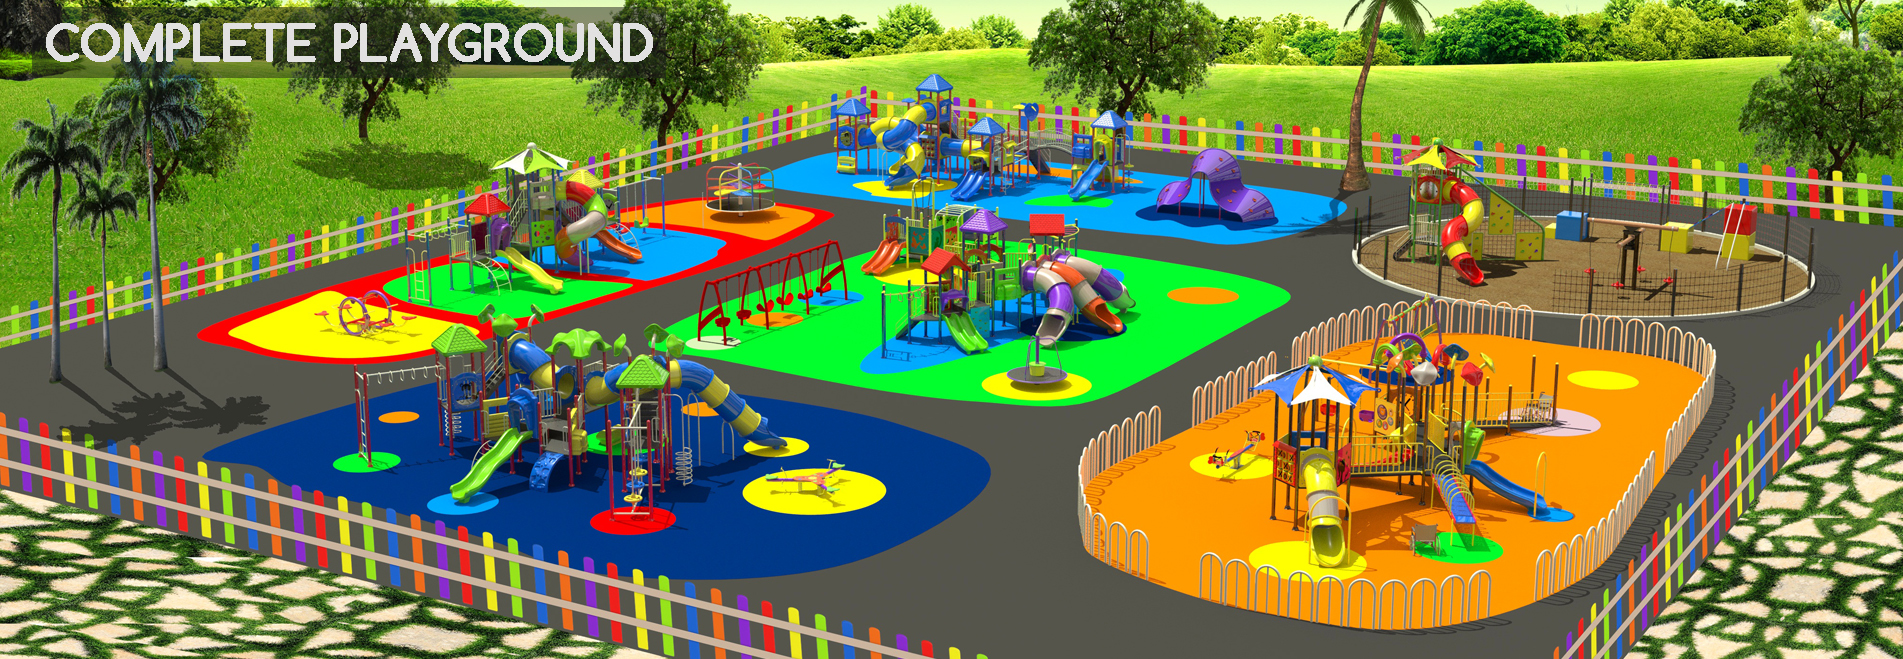 COMPLEATE PLAYGROUND